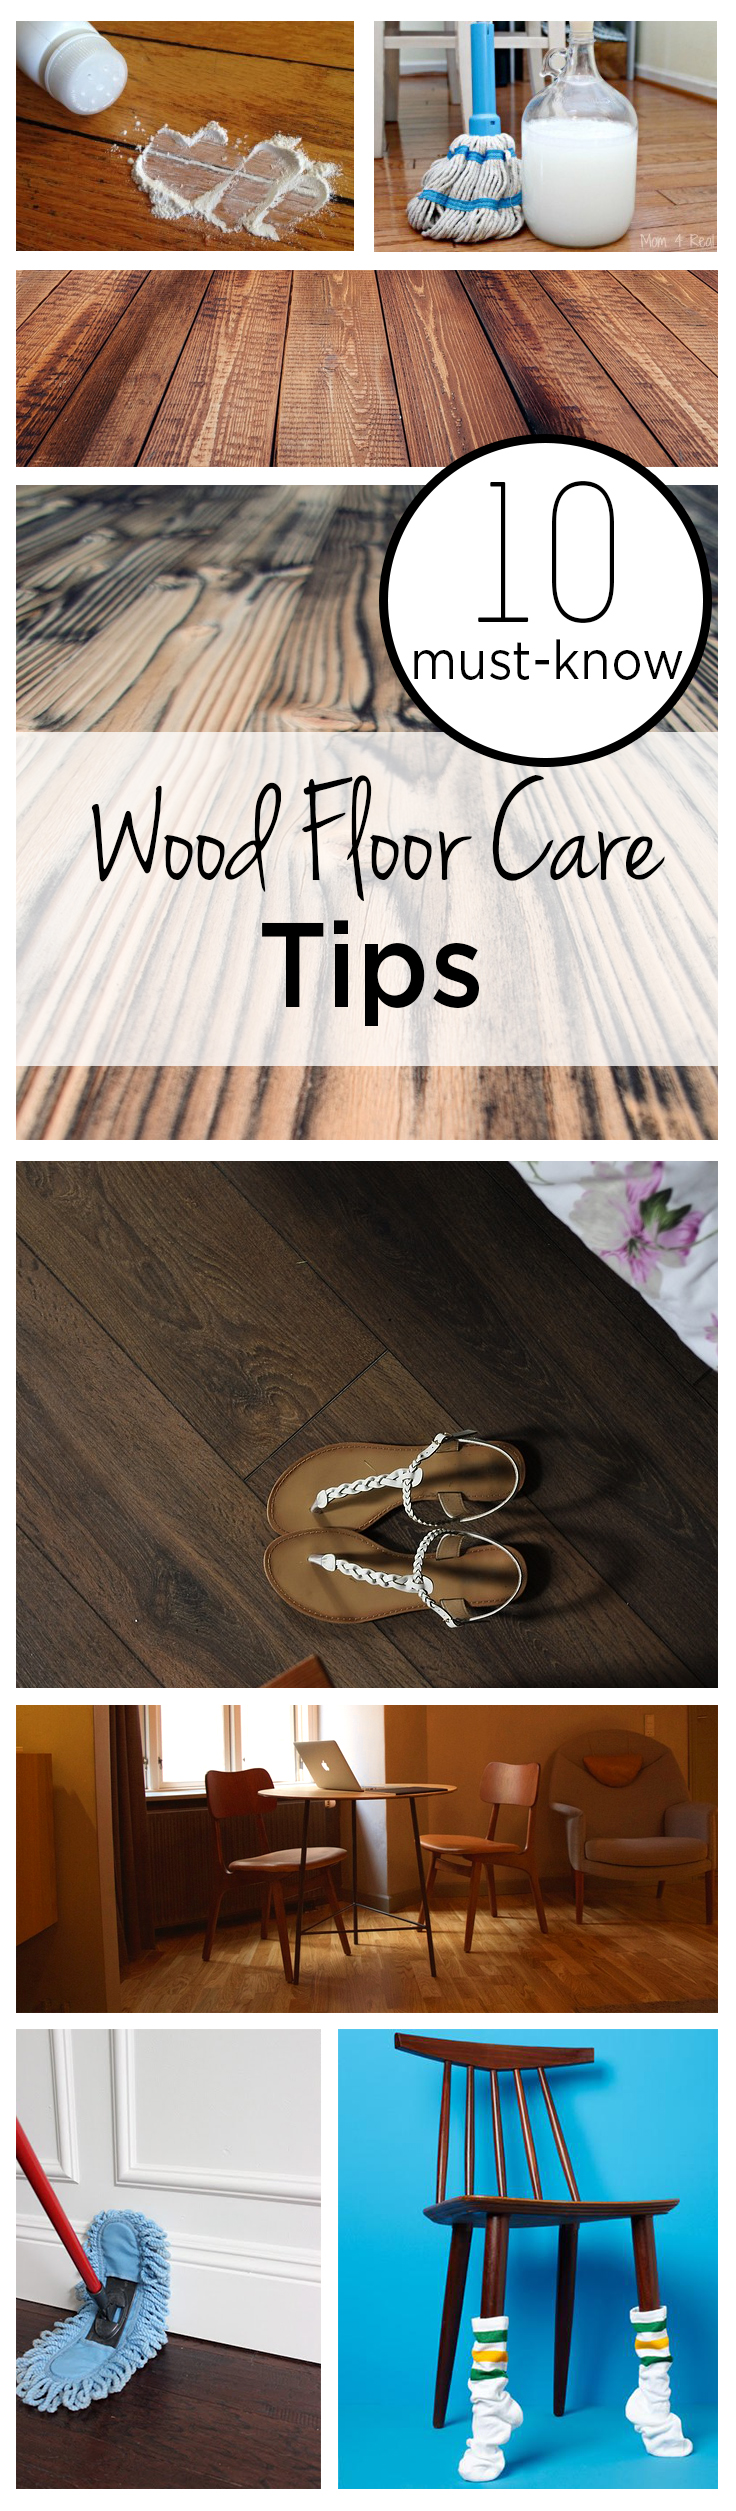 Cleaning hacks, home care hacks, home care tips and tricks, cleaning tips and tricks, popular pin, DIY clean, DIY home decor, home decor, home decor hacks.